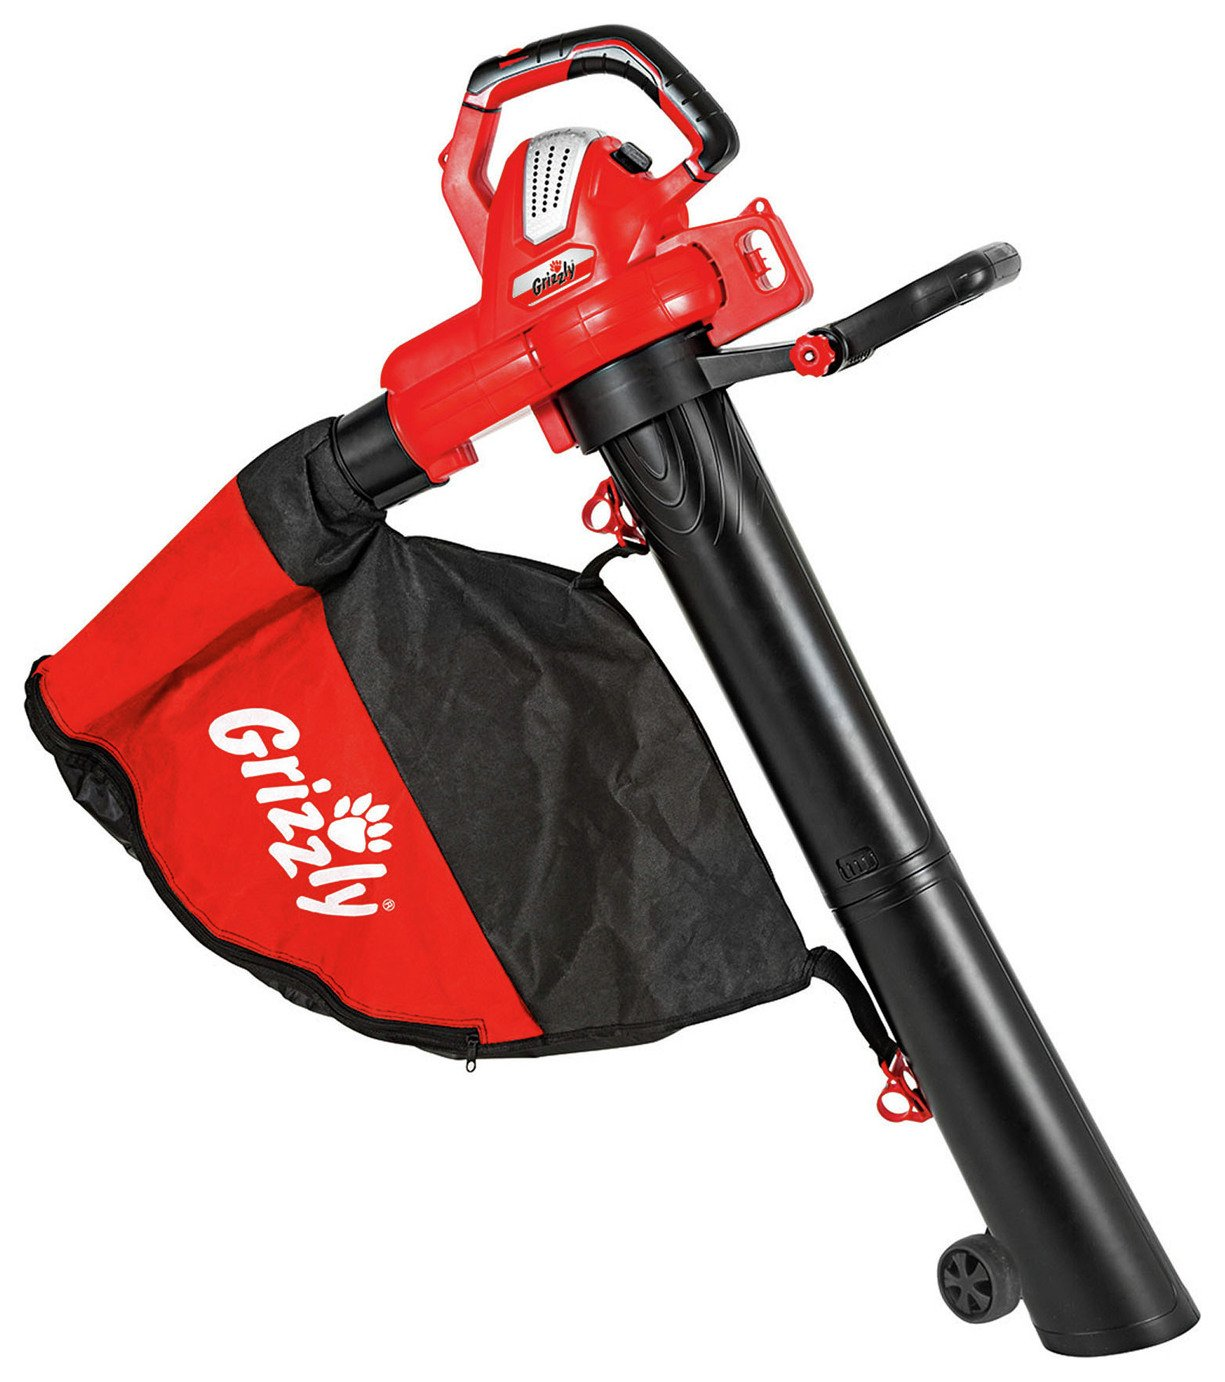 Image of Grizzly Tools Combi Leaf Blower and Vac - 3000W